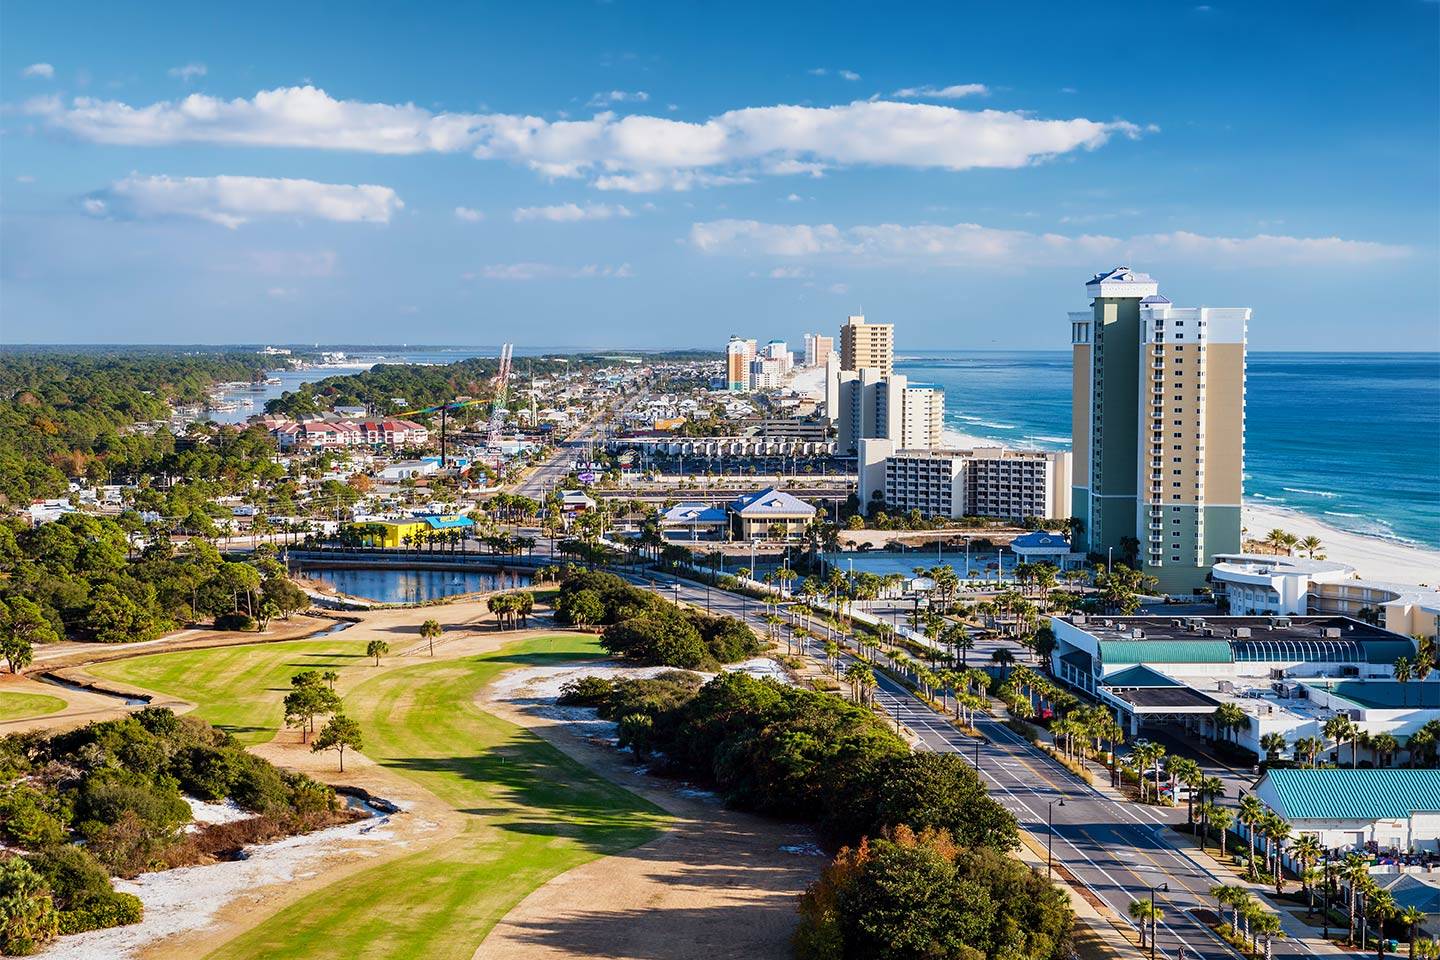 An aerial view of downtown Panama City Beach with the Gulf of Mexico on the right-hand side